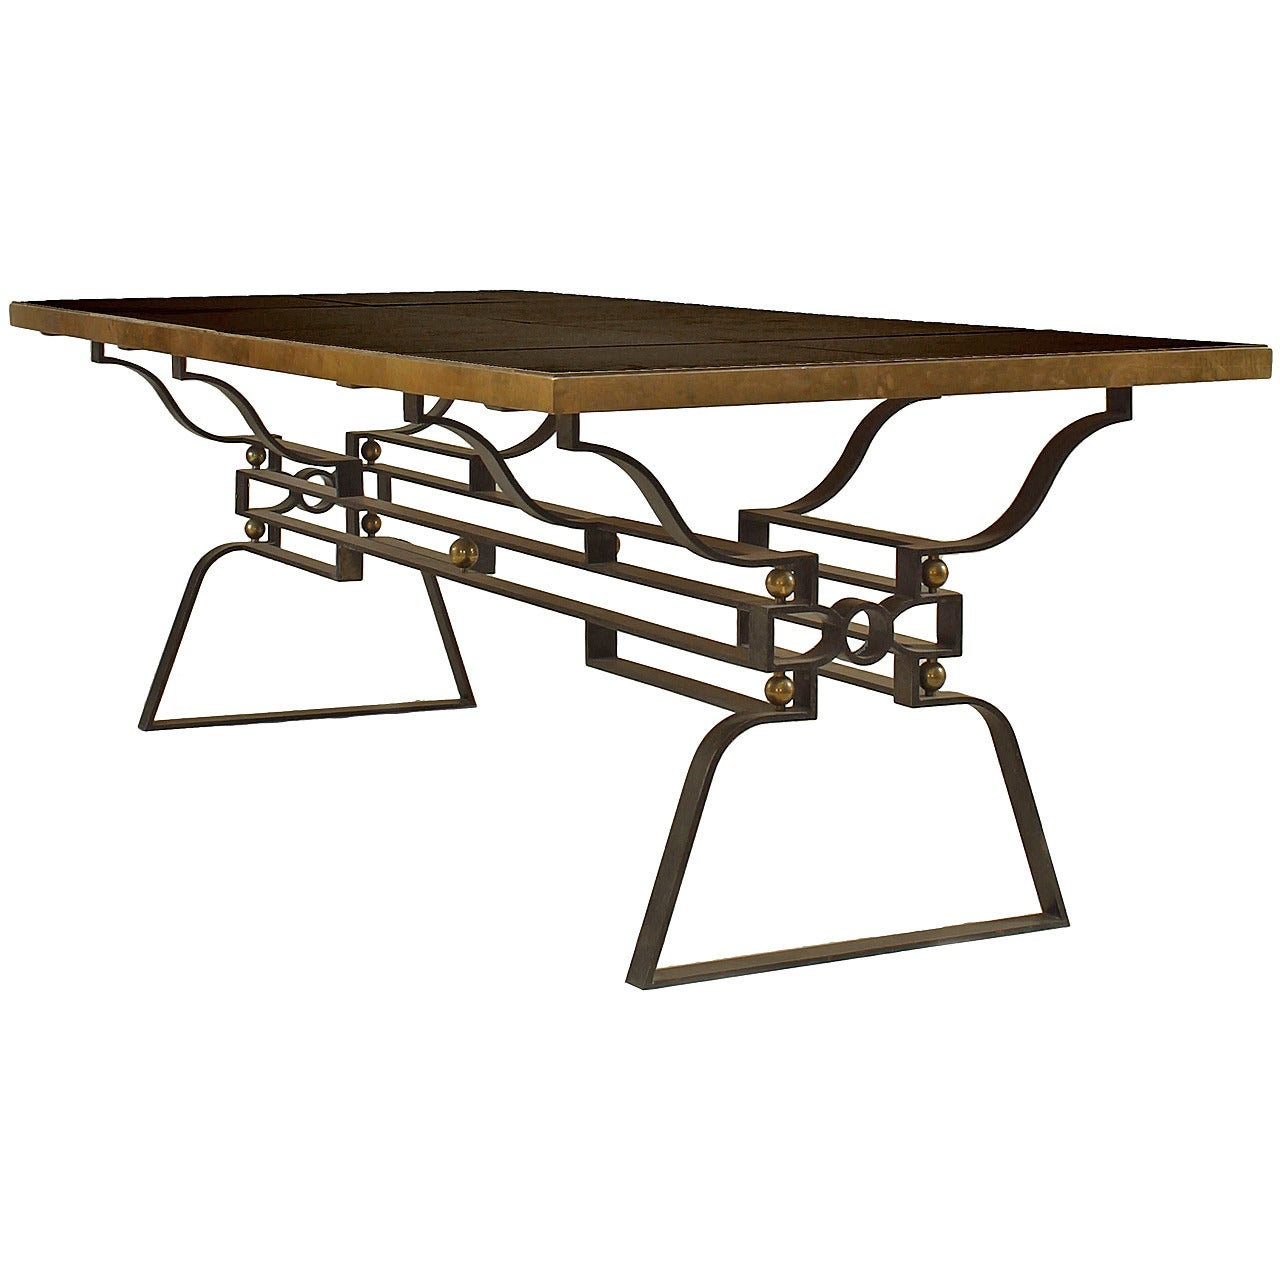 French Post-War Design 1950s Dining Table